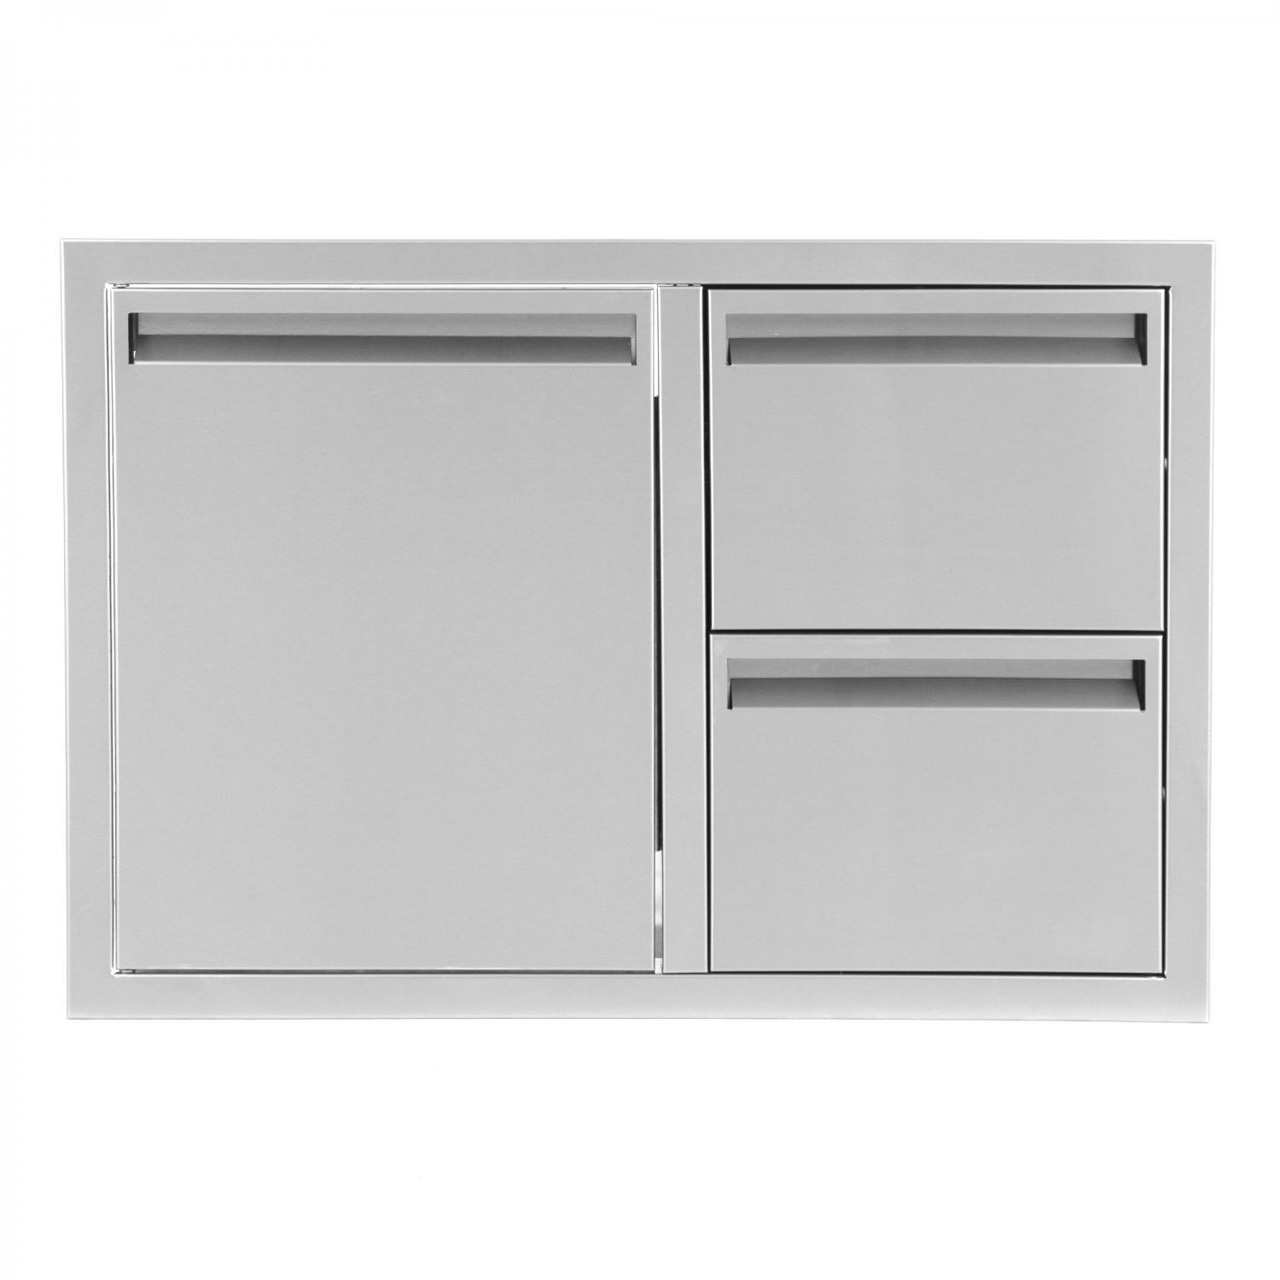 BBQ Island 350 - 30 Inch Single Door with 2 Drawers Combo